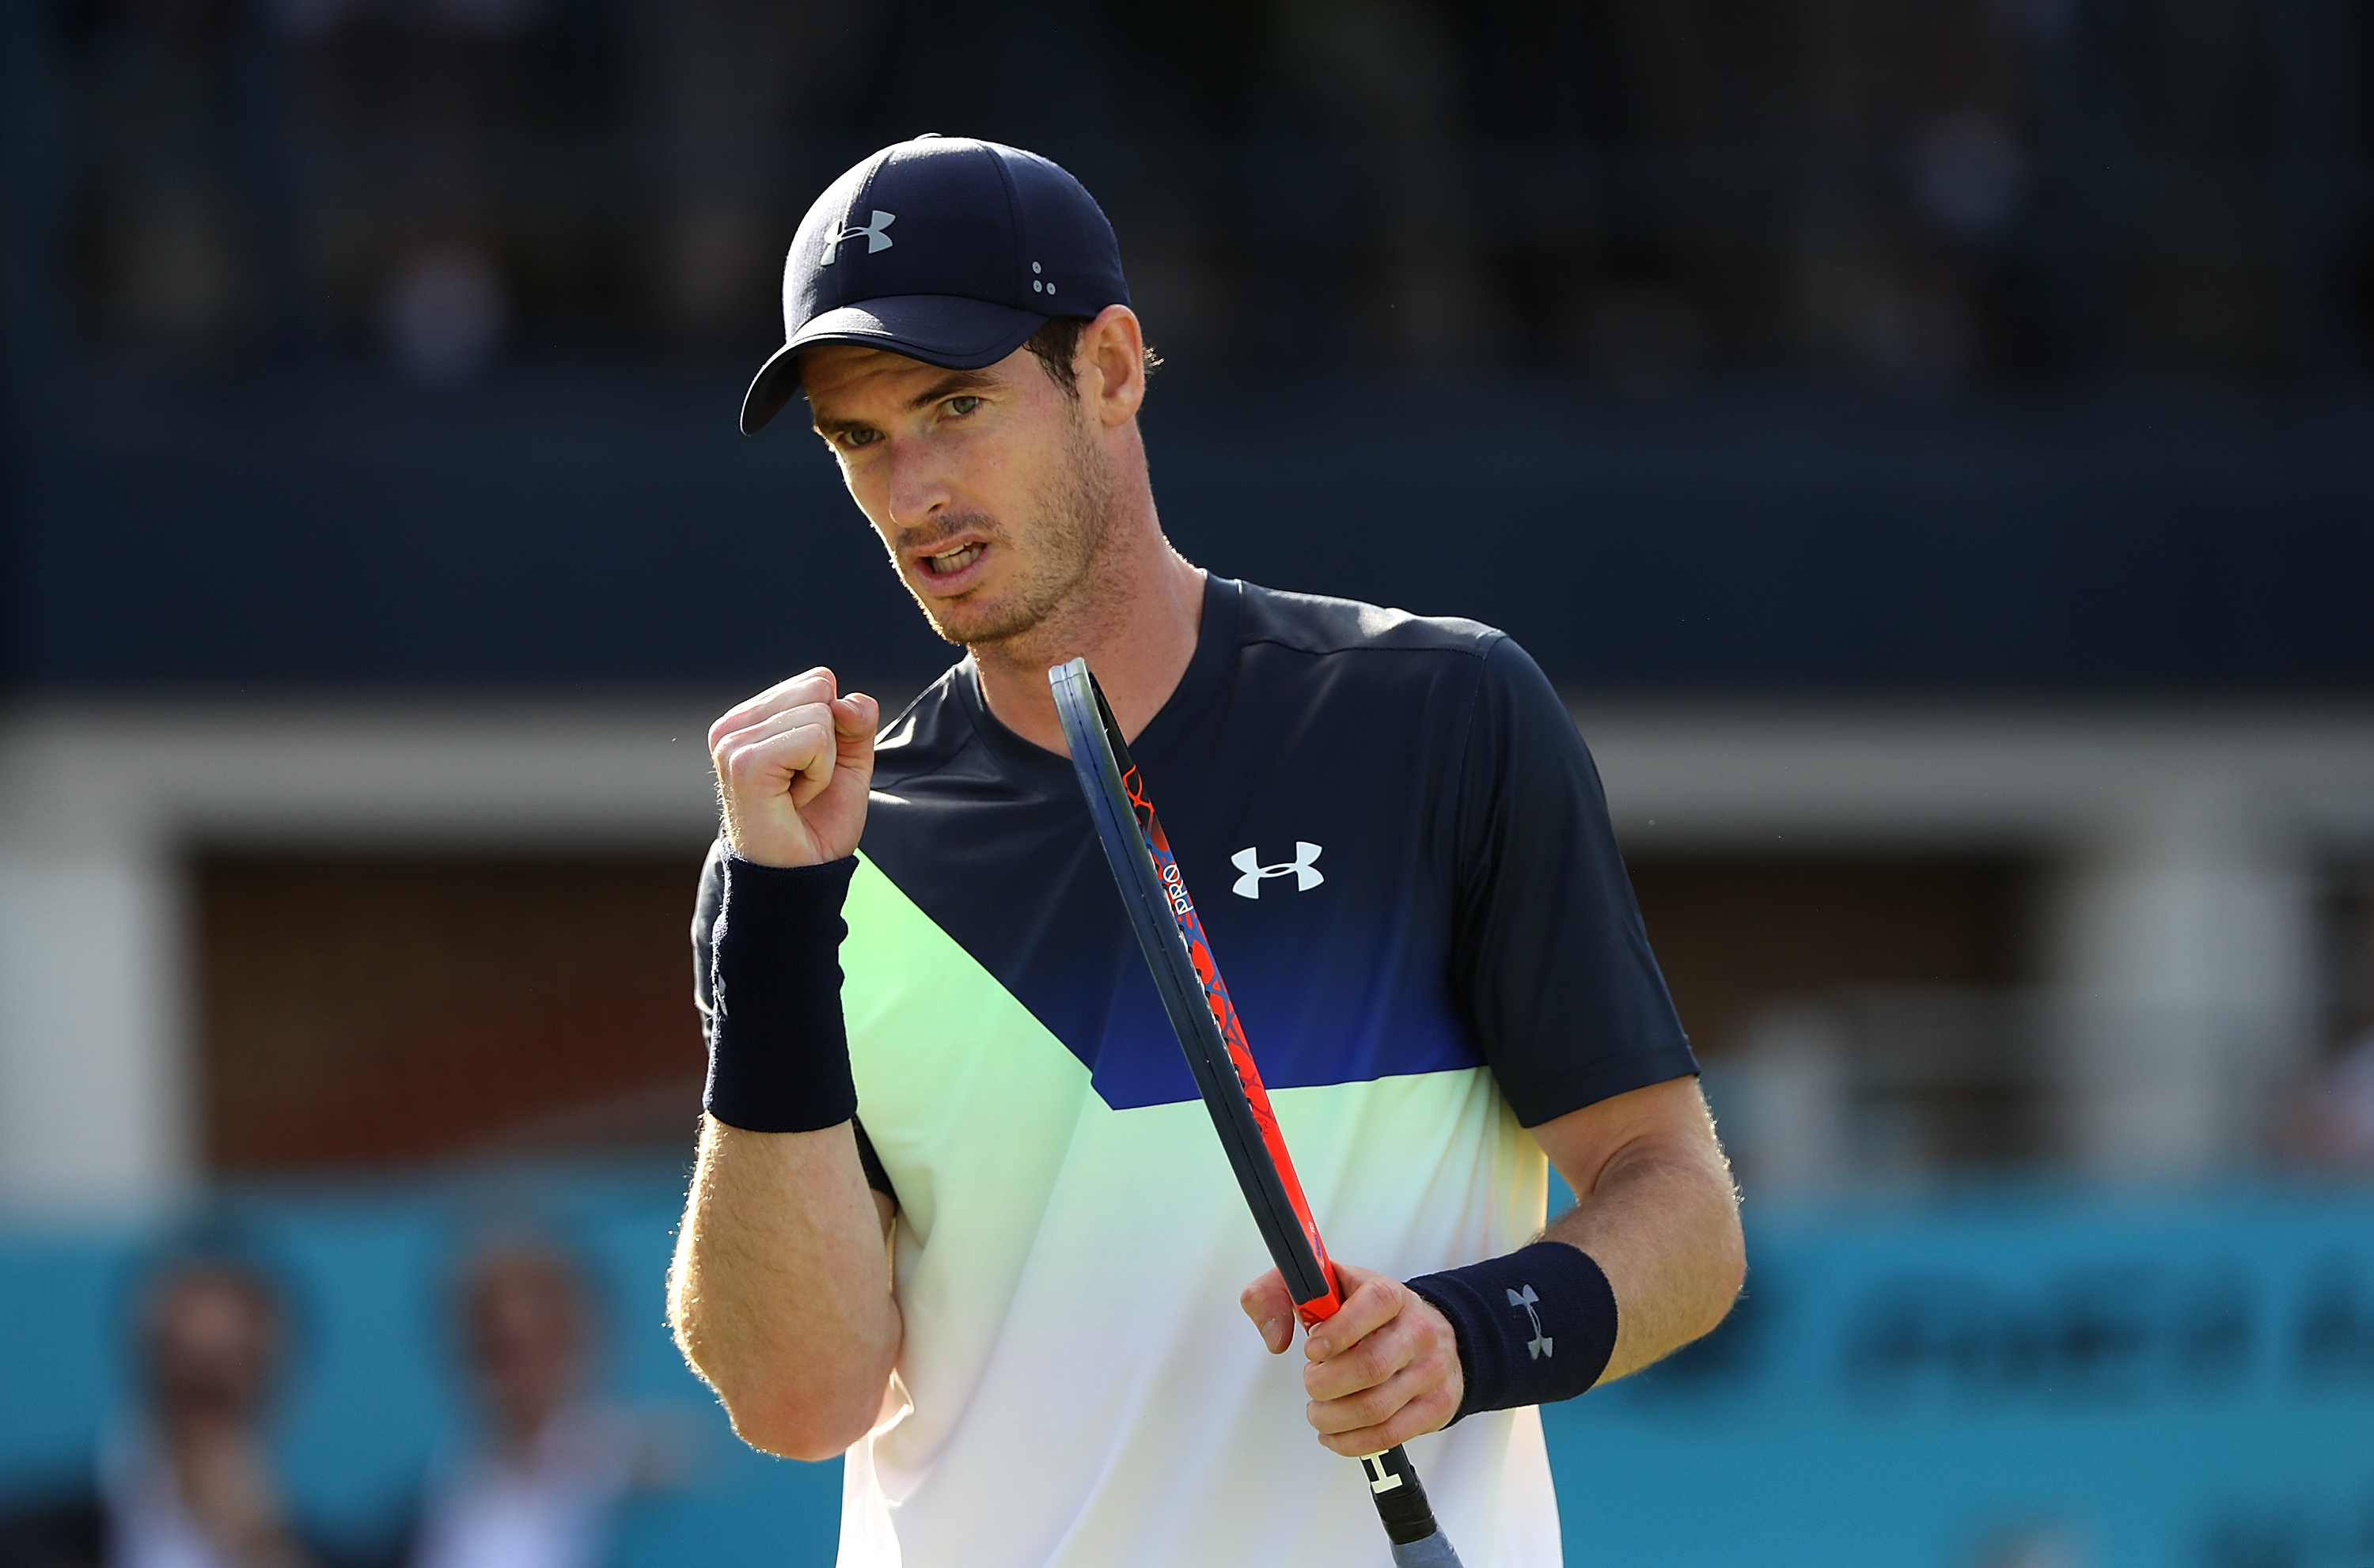 LONDON, ENGLAND - JUNE 19:  Andy Murray of Great Britain celebrates winning a point during his match against Nick Kyrgios of Australia on Day Two of the Fever-Tree Championships at Queens Club on June 19, 2018 in London, United Kingdom.  (Photo by Matthew Stockman/Getty Images)  TL